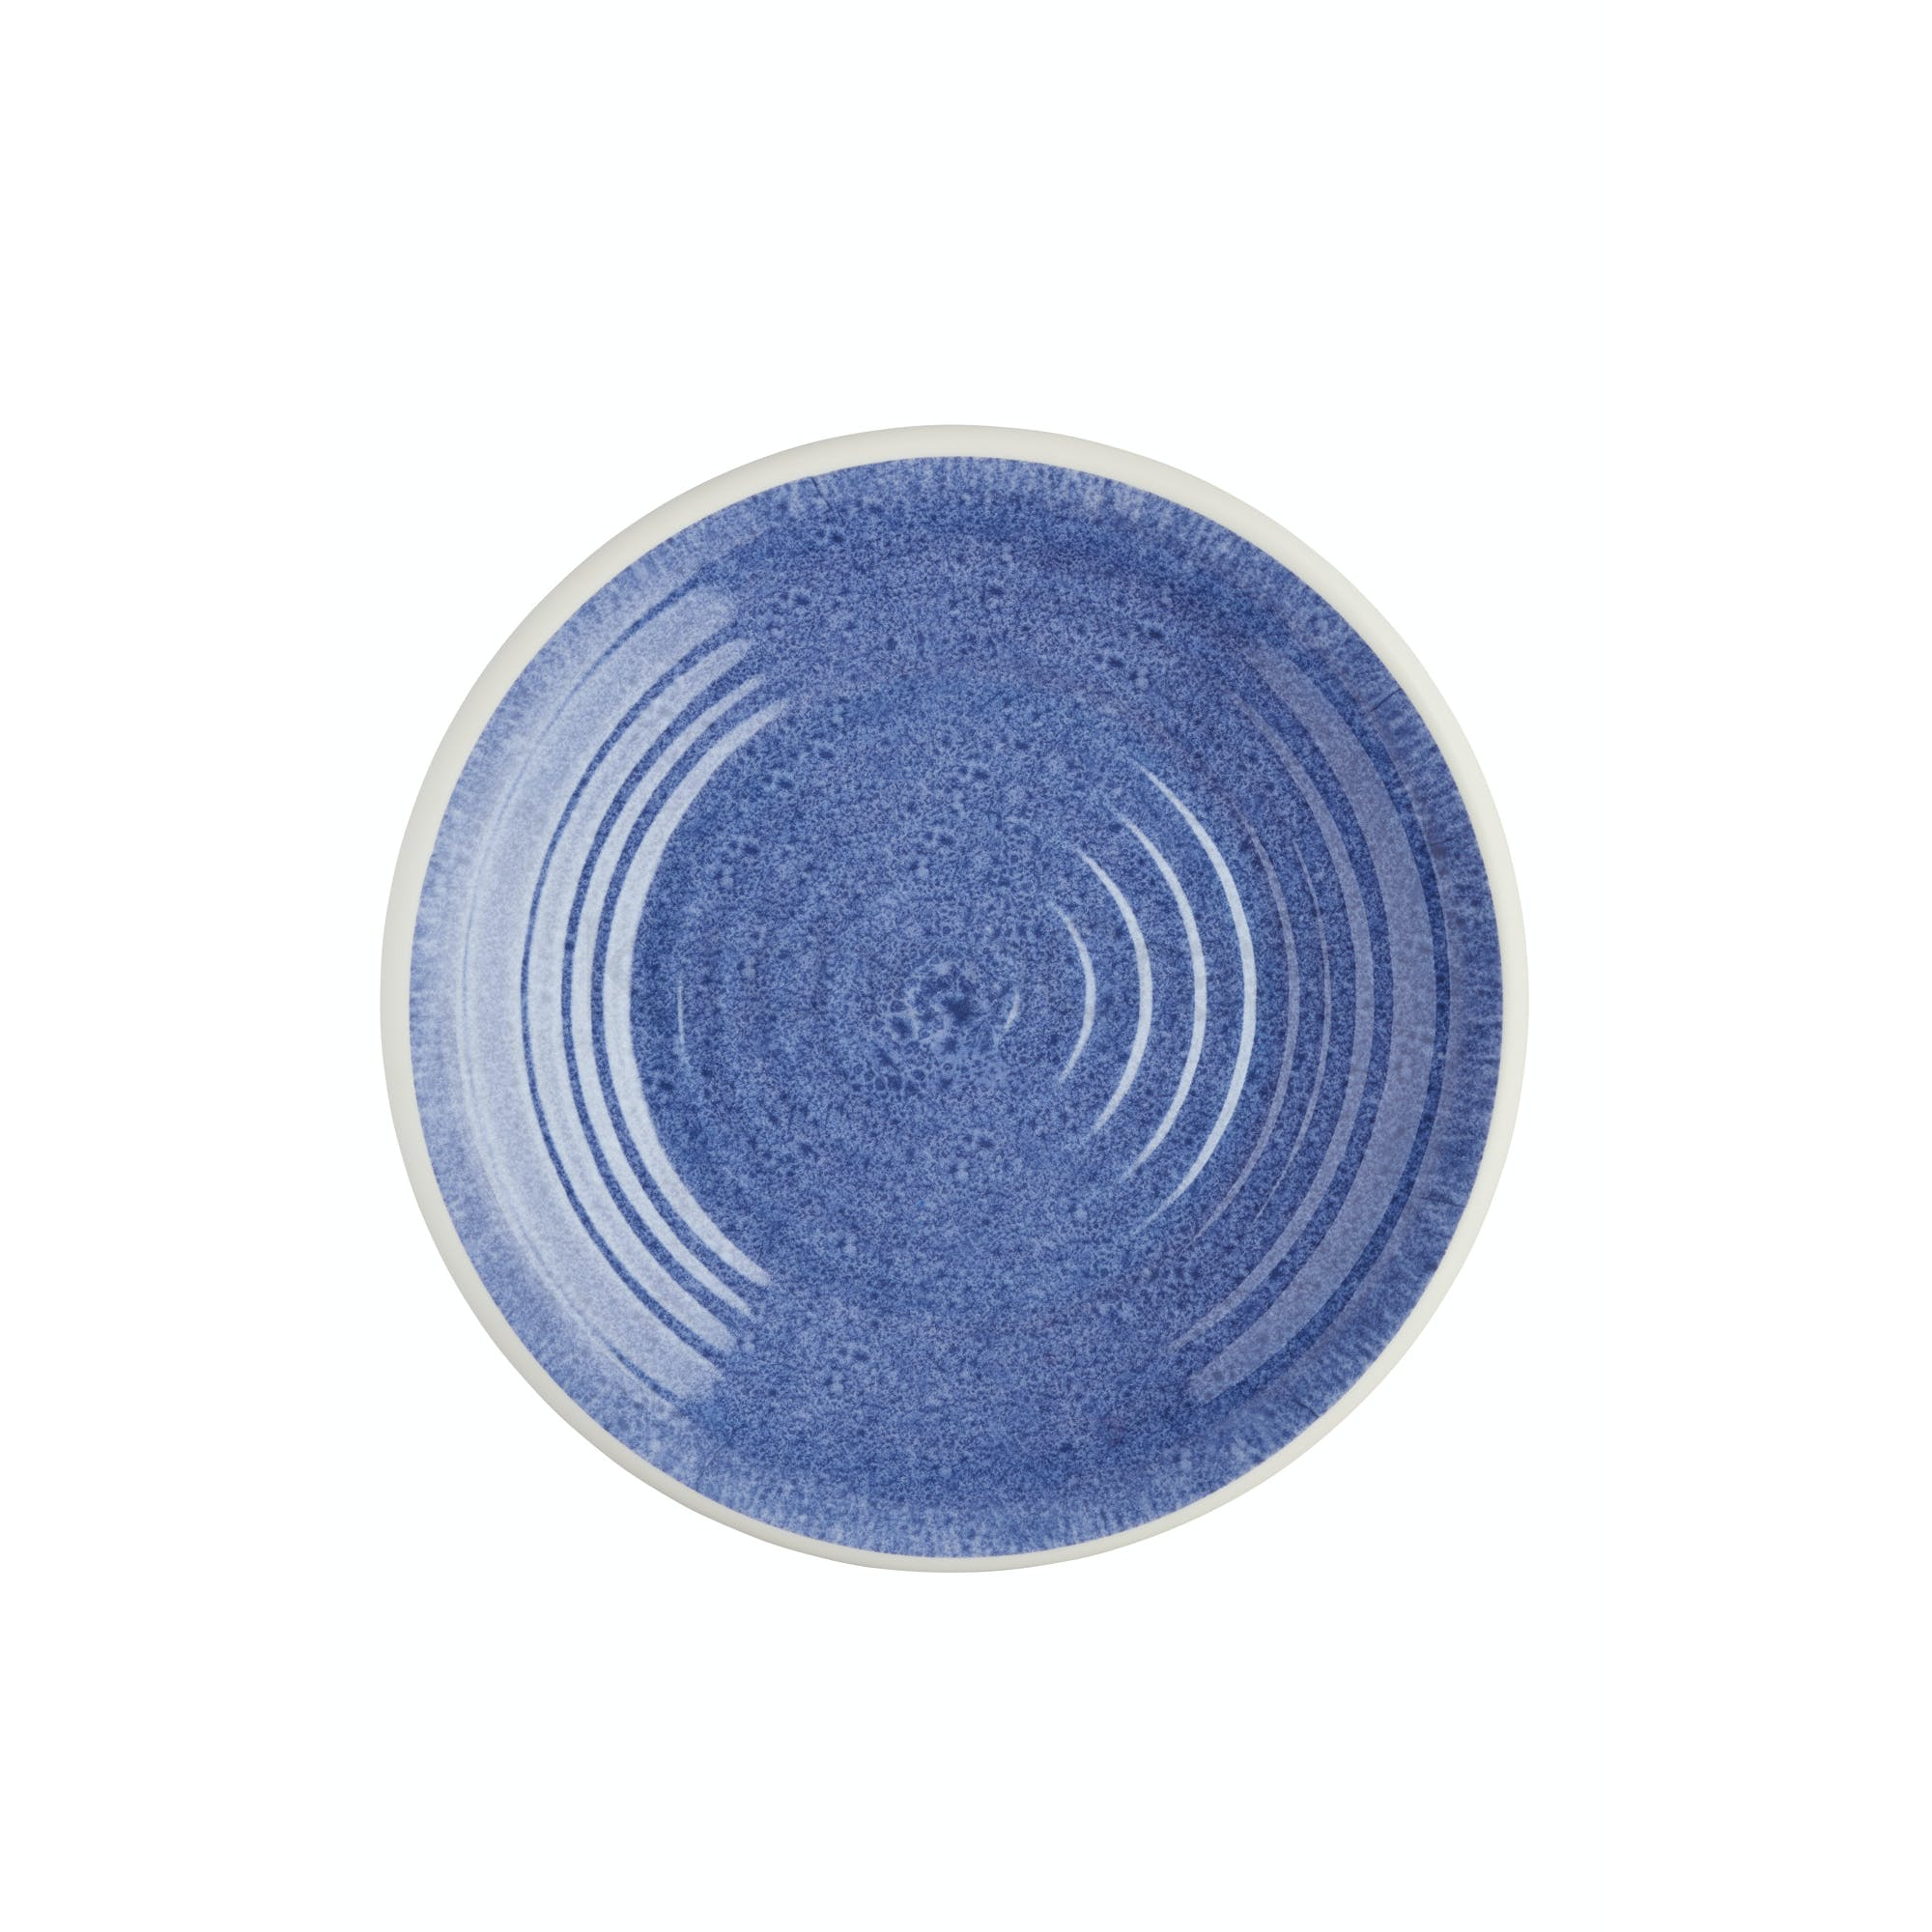 KitchenCraft Santorini Melamine Dinner Plate | Bank Holiday